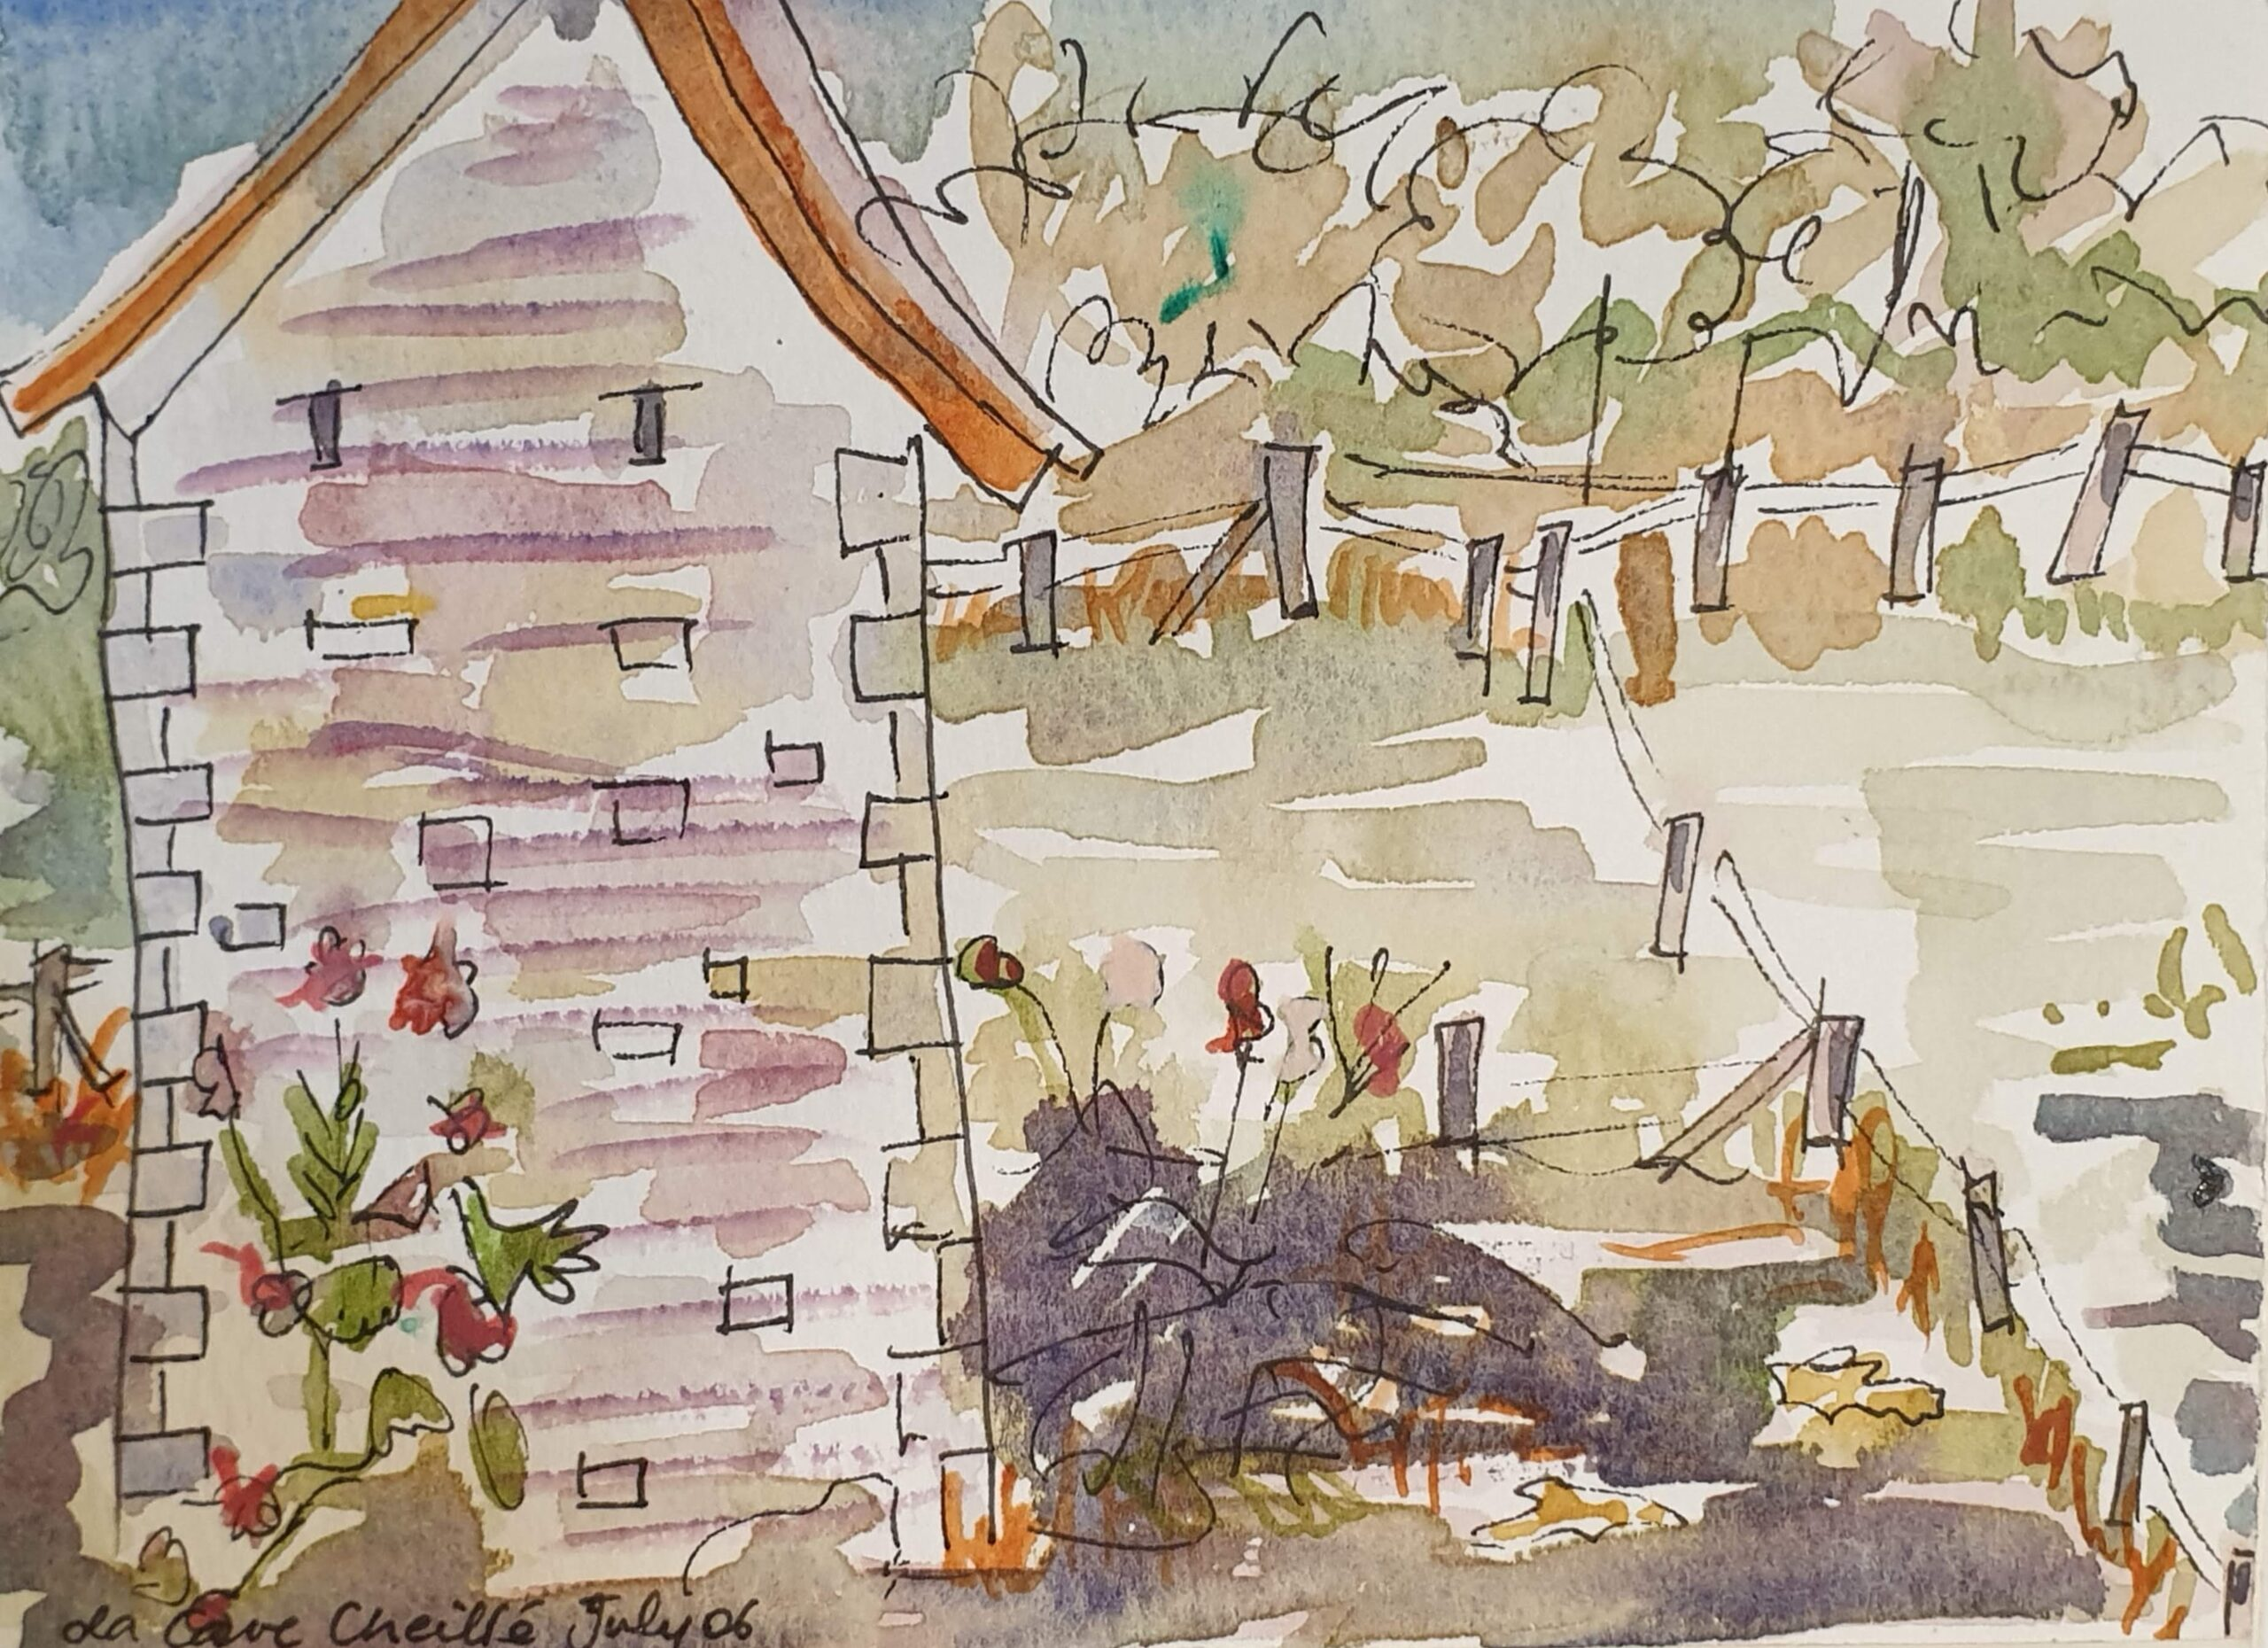 Watercolours from the past